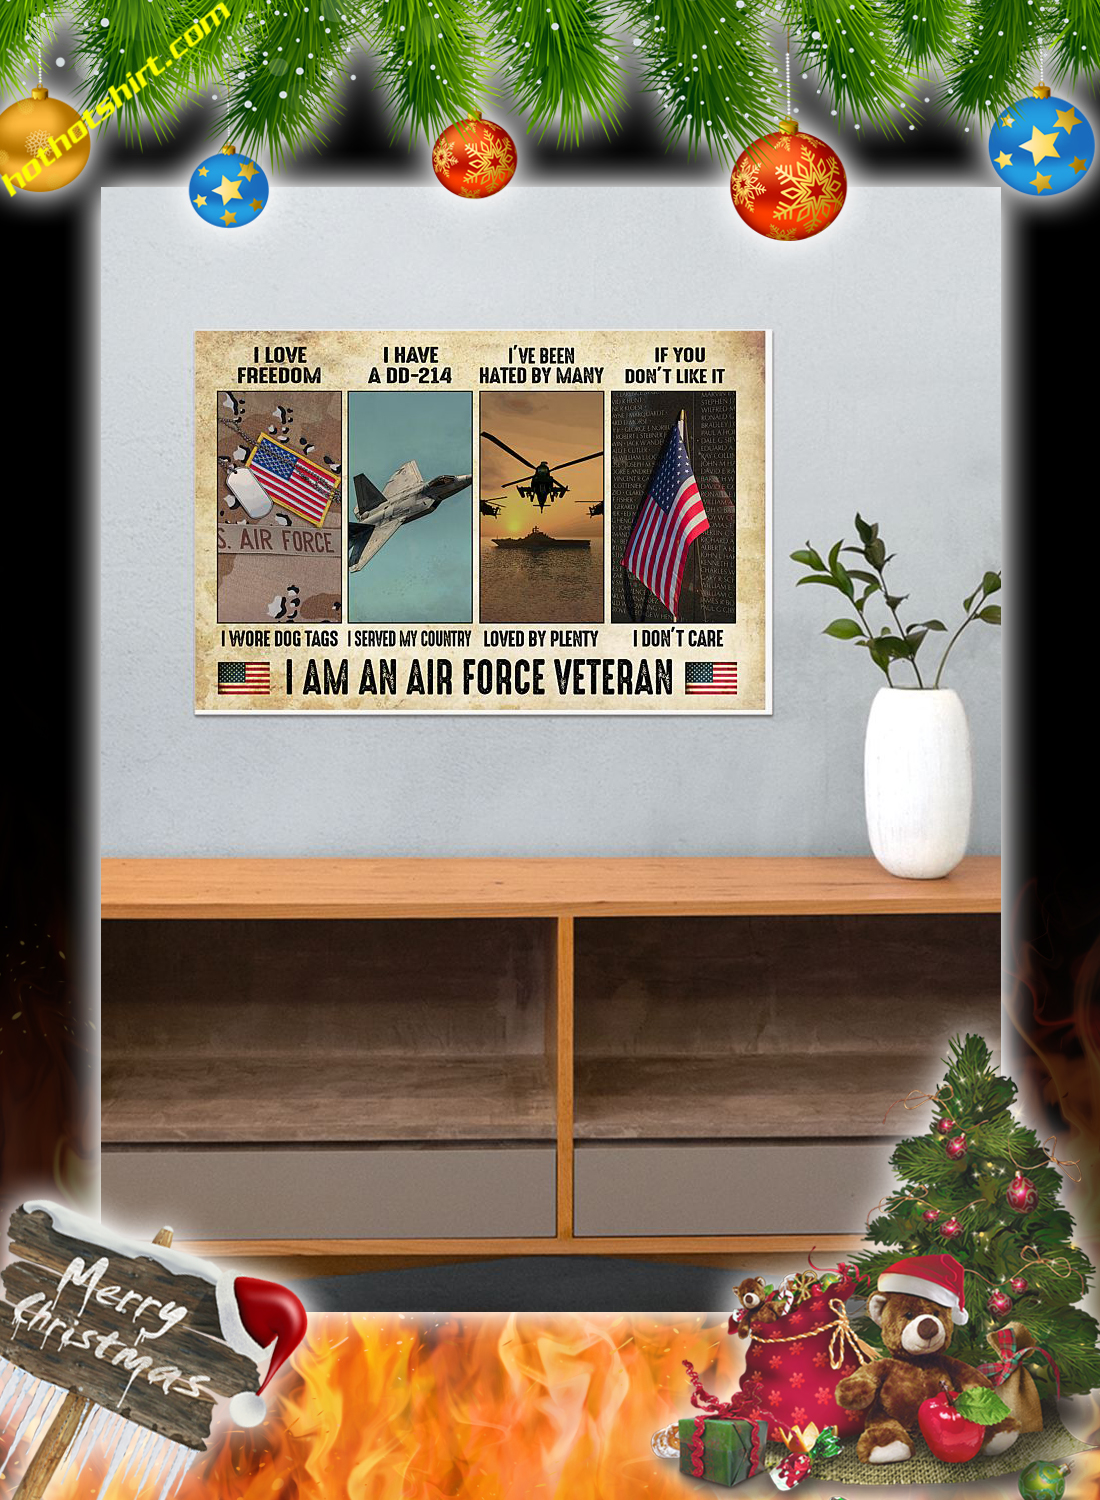 I am an air force veteran poster 3